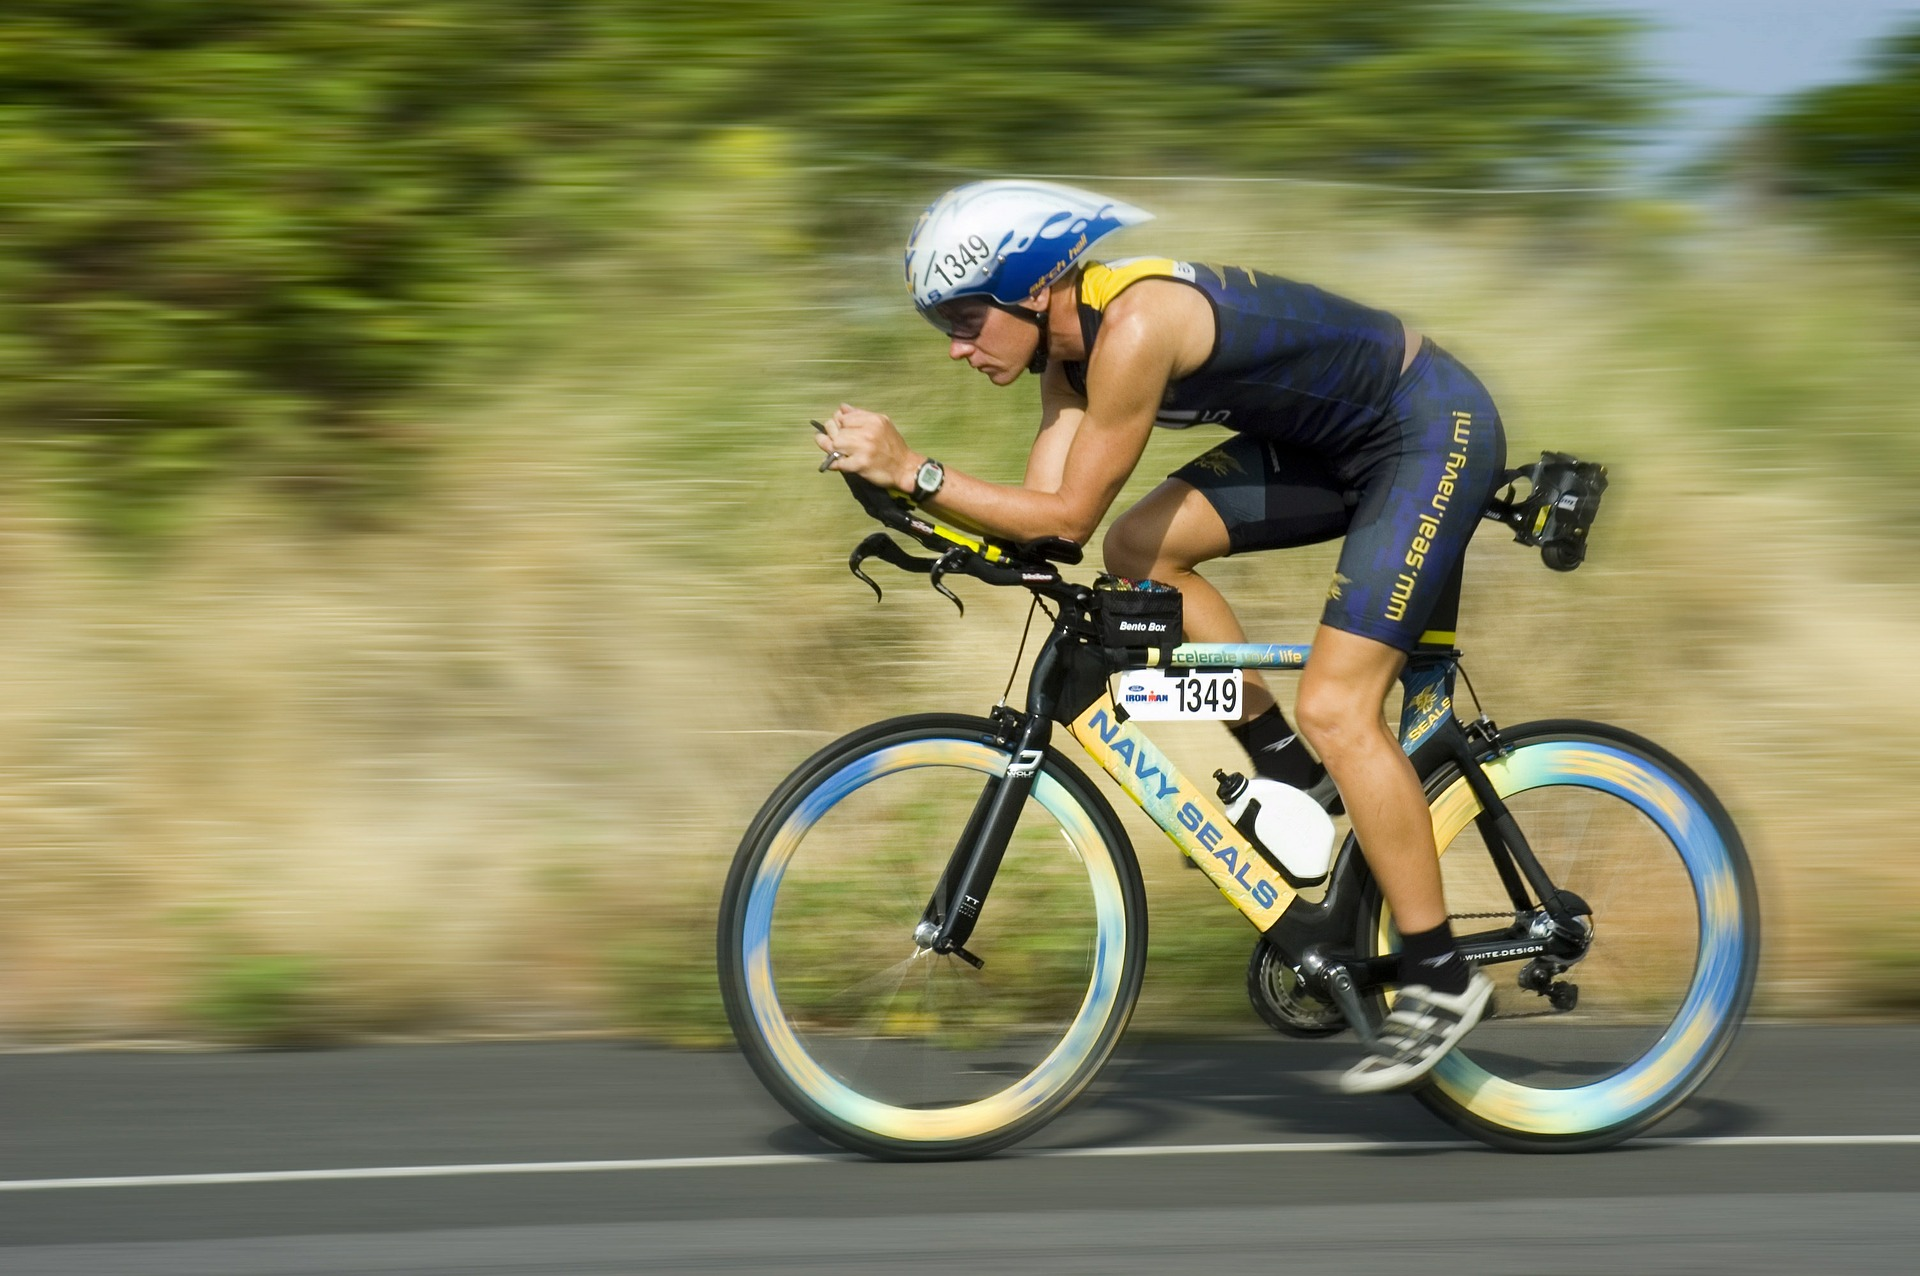 triathalon-cycling-racer-618750_1920.jpg